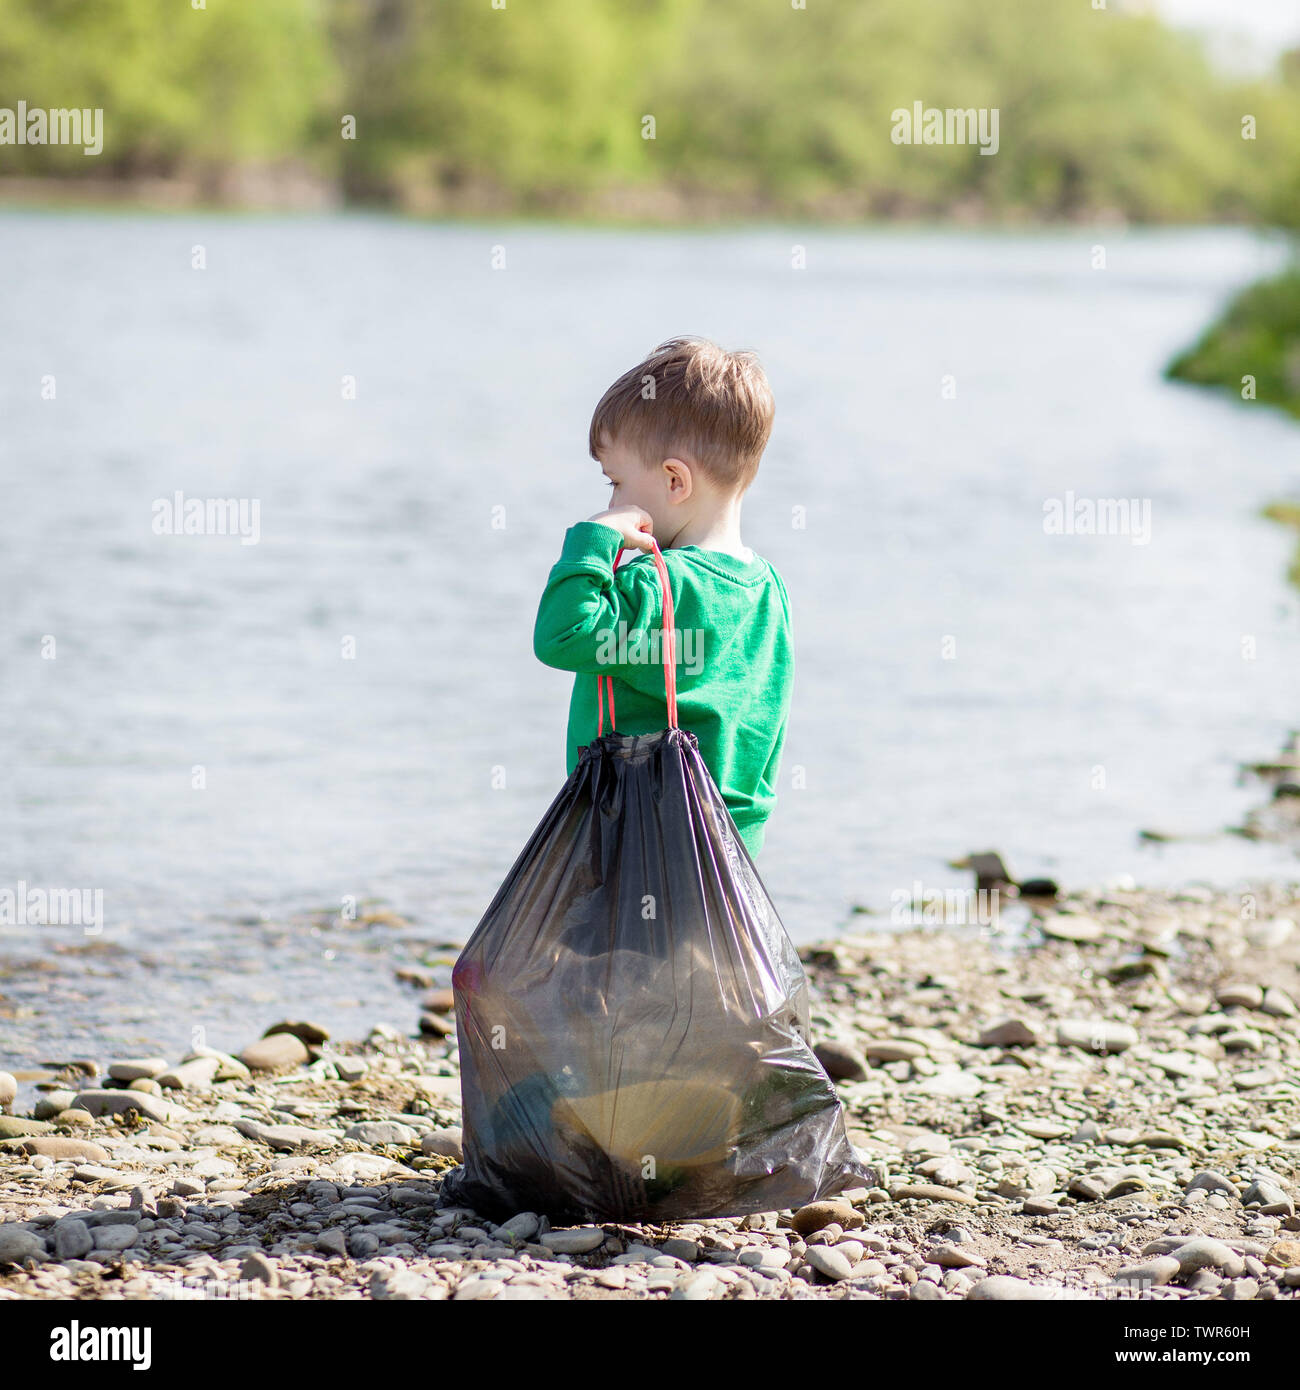 Save environment concept, a little boy collecting garbage and plastic bottles on the beach to dumped into the trash - Stock Image